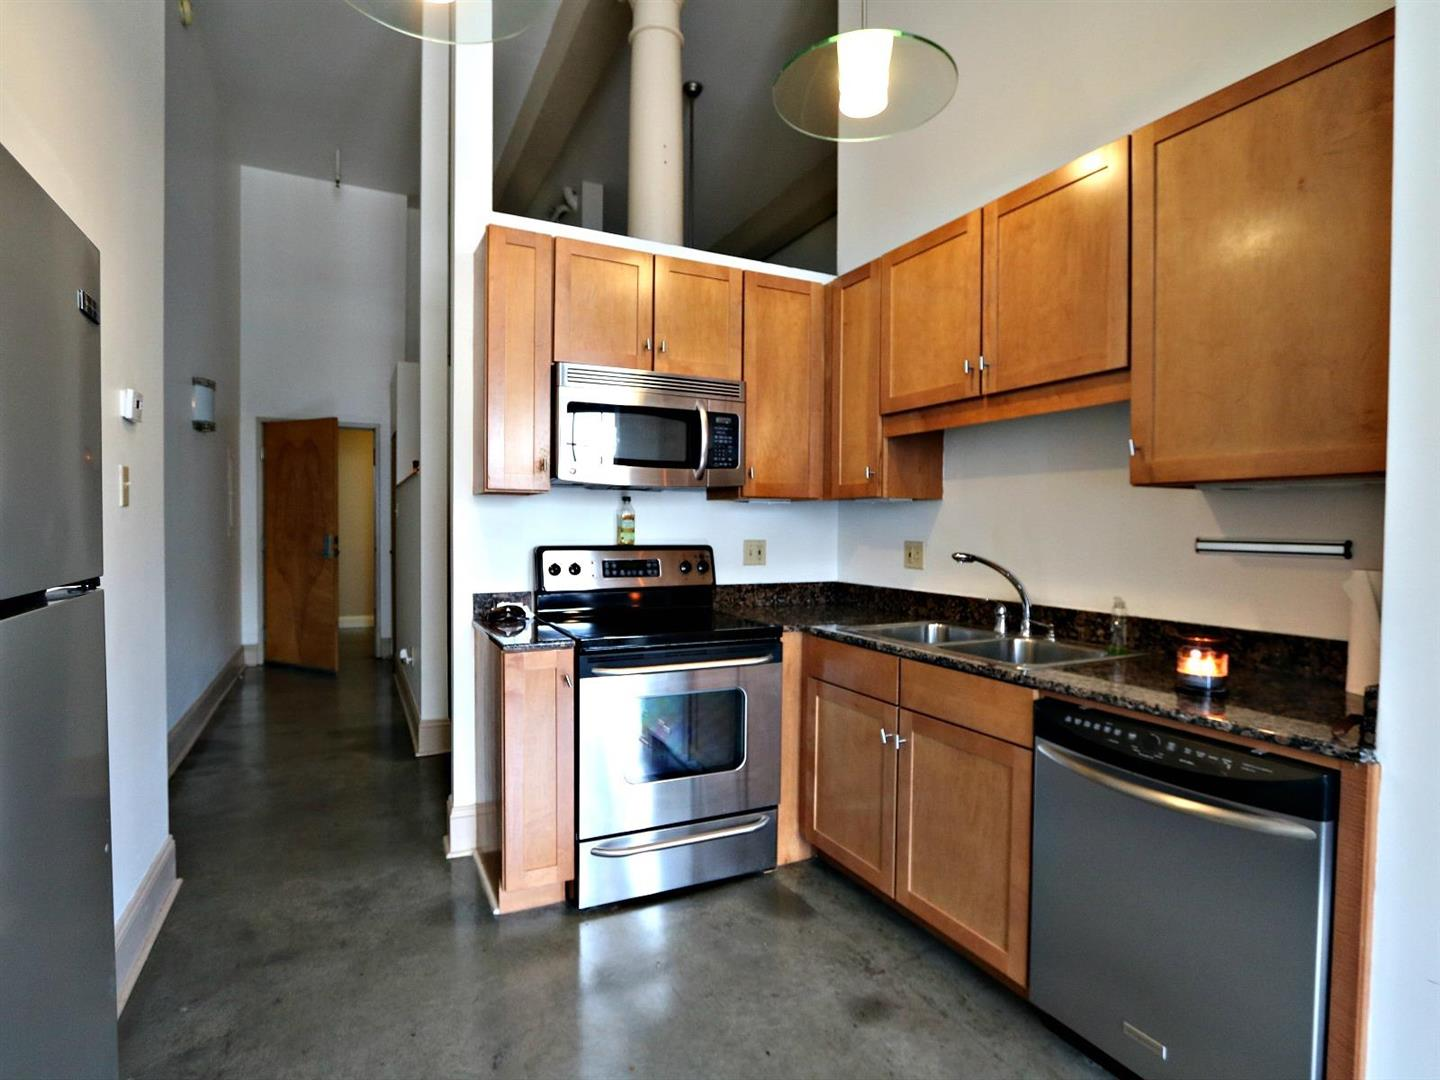 139CottonMillCondos,Kitchen1.jpg